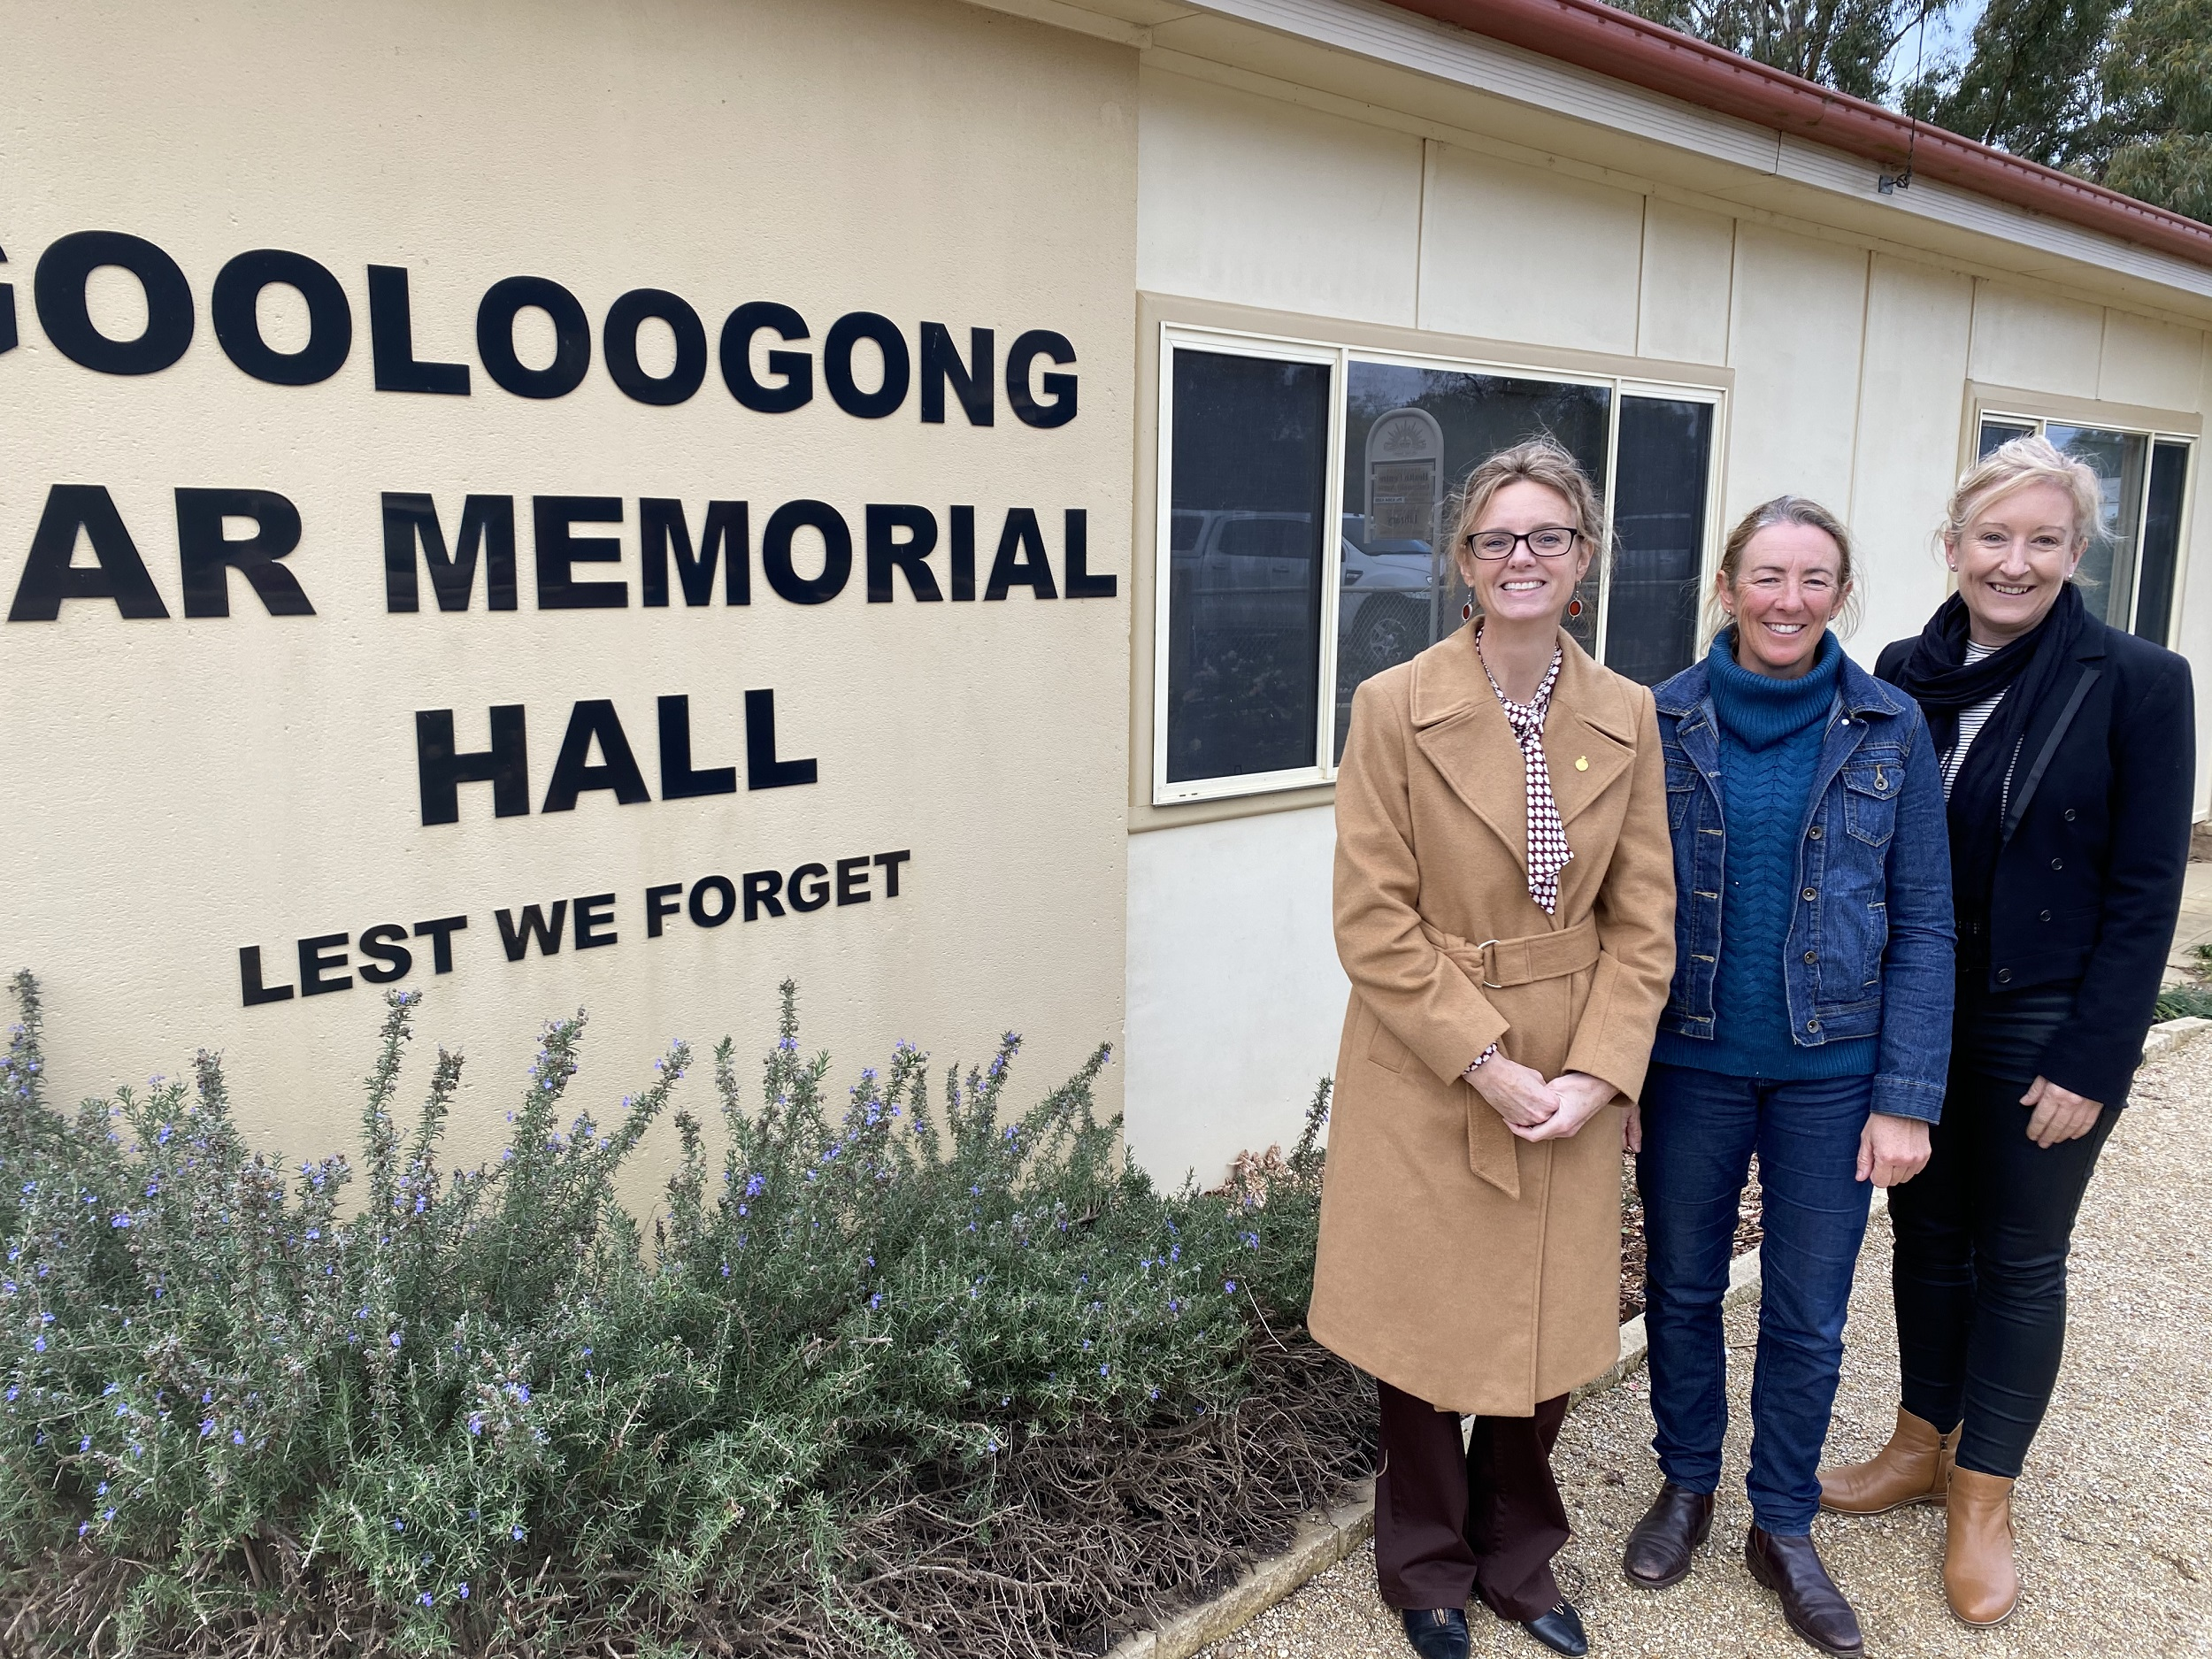 Steph Cooke MP, Kylie Reeves and Emma Marr stand in front of the Gooloogong War Memorial Hall and a sign bearing its name. All three smile at the camera